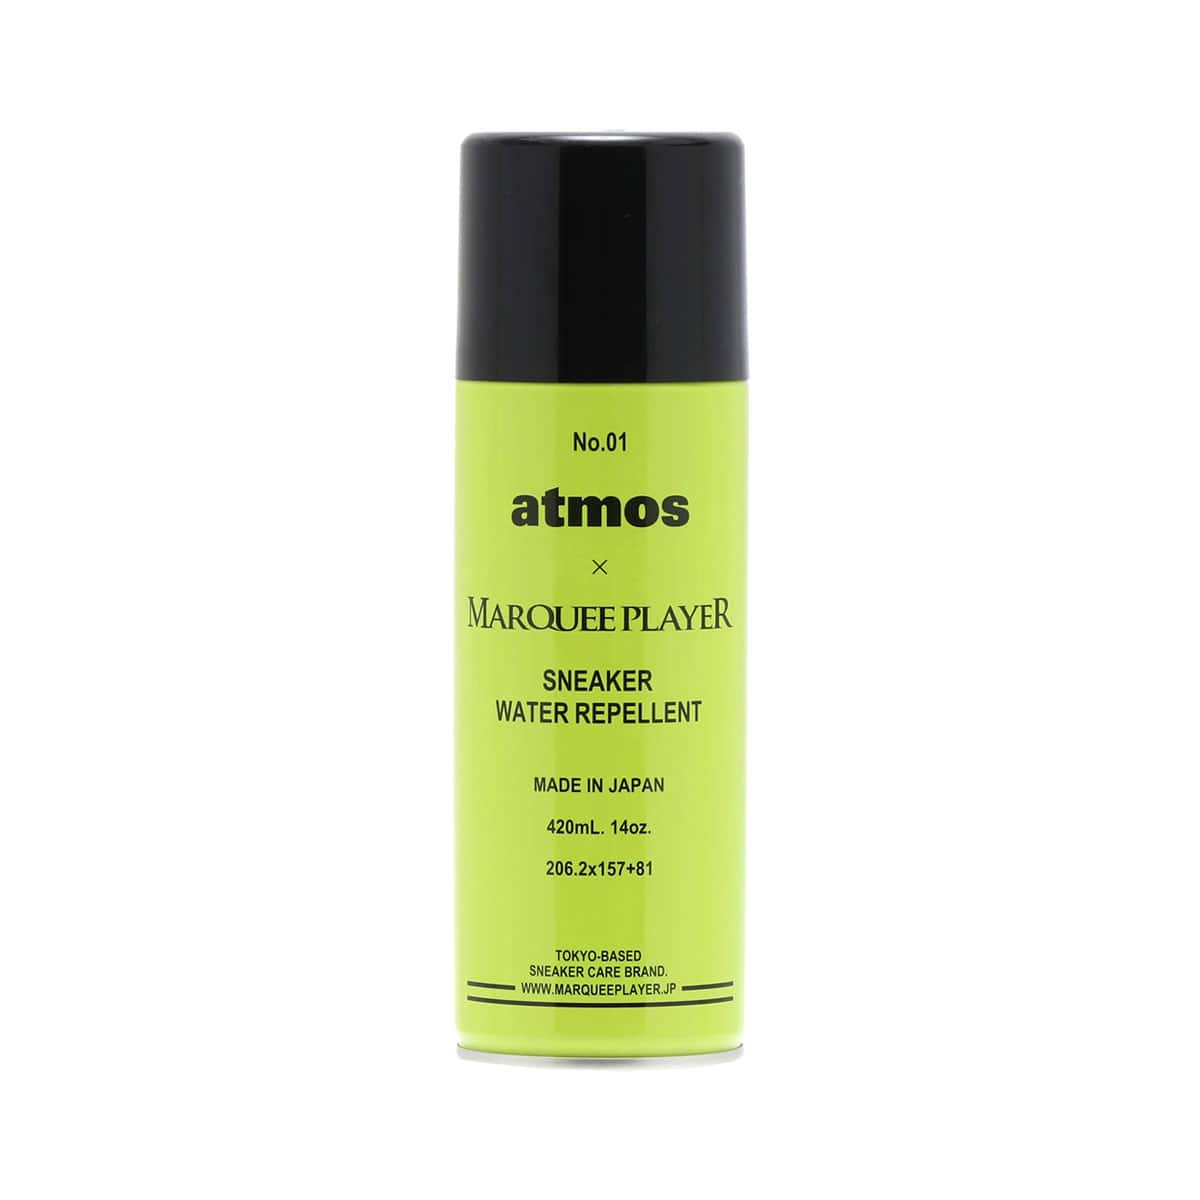 MARQUEE PLAYER atmos×marquee player sneaker water repellent  GREEN_photo_large